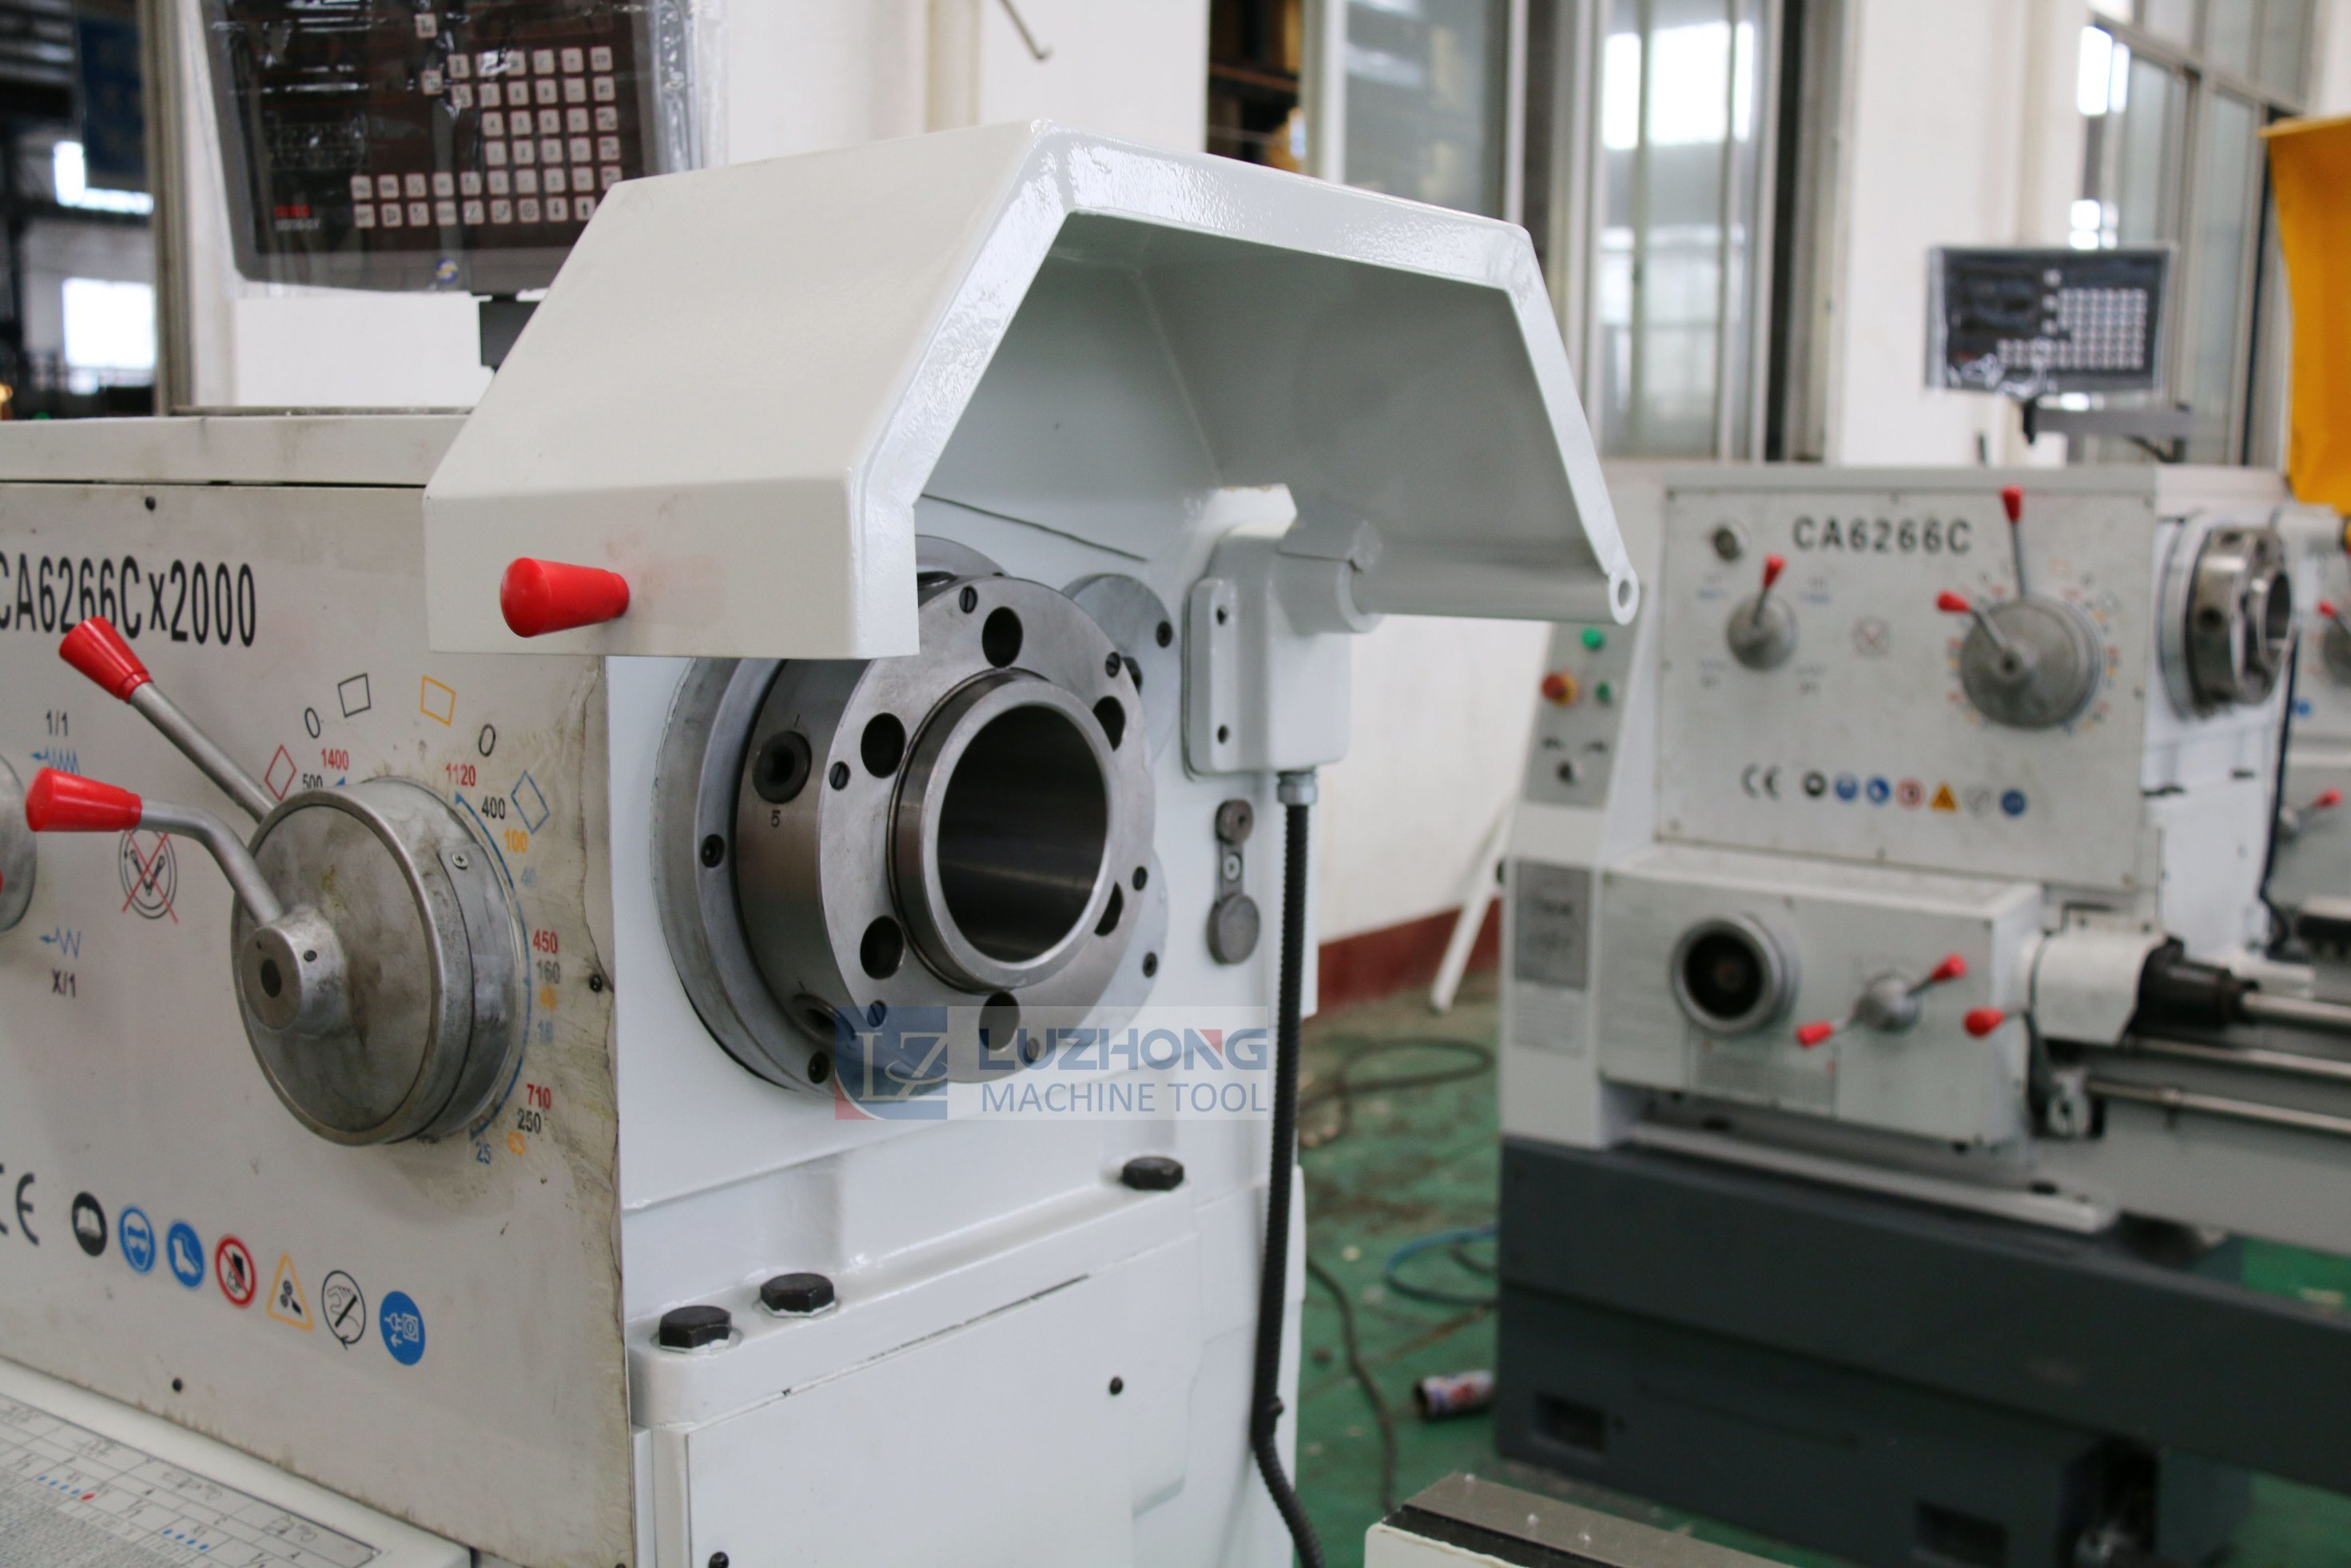 Horizontal Precision Gap Bed Metal Lathe (CA6240 CA6250 CA6266 CA6280)